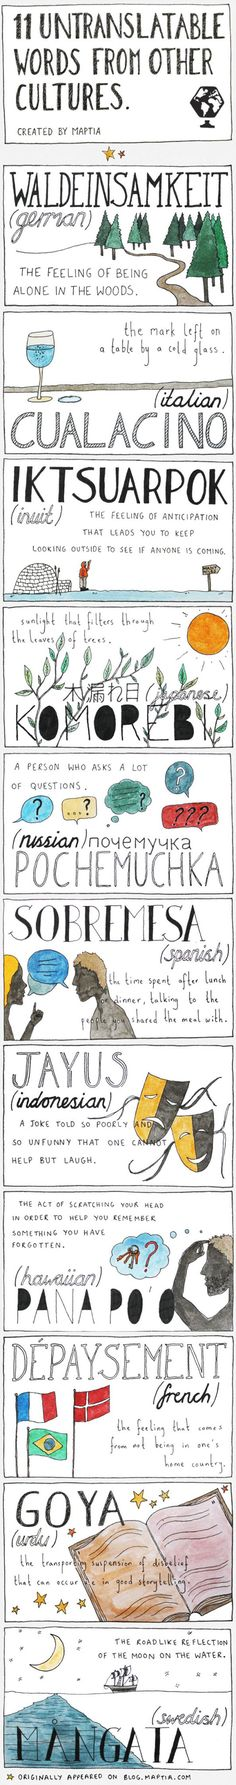 Untranslatable words from other languages.